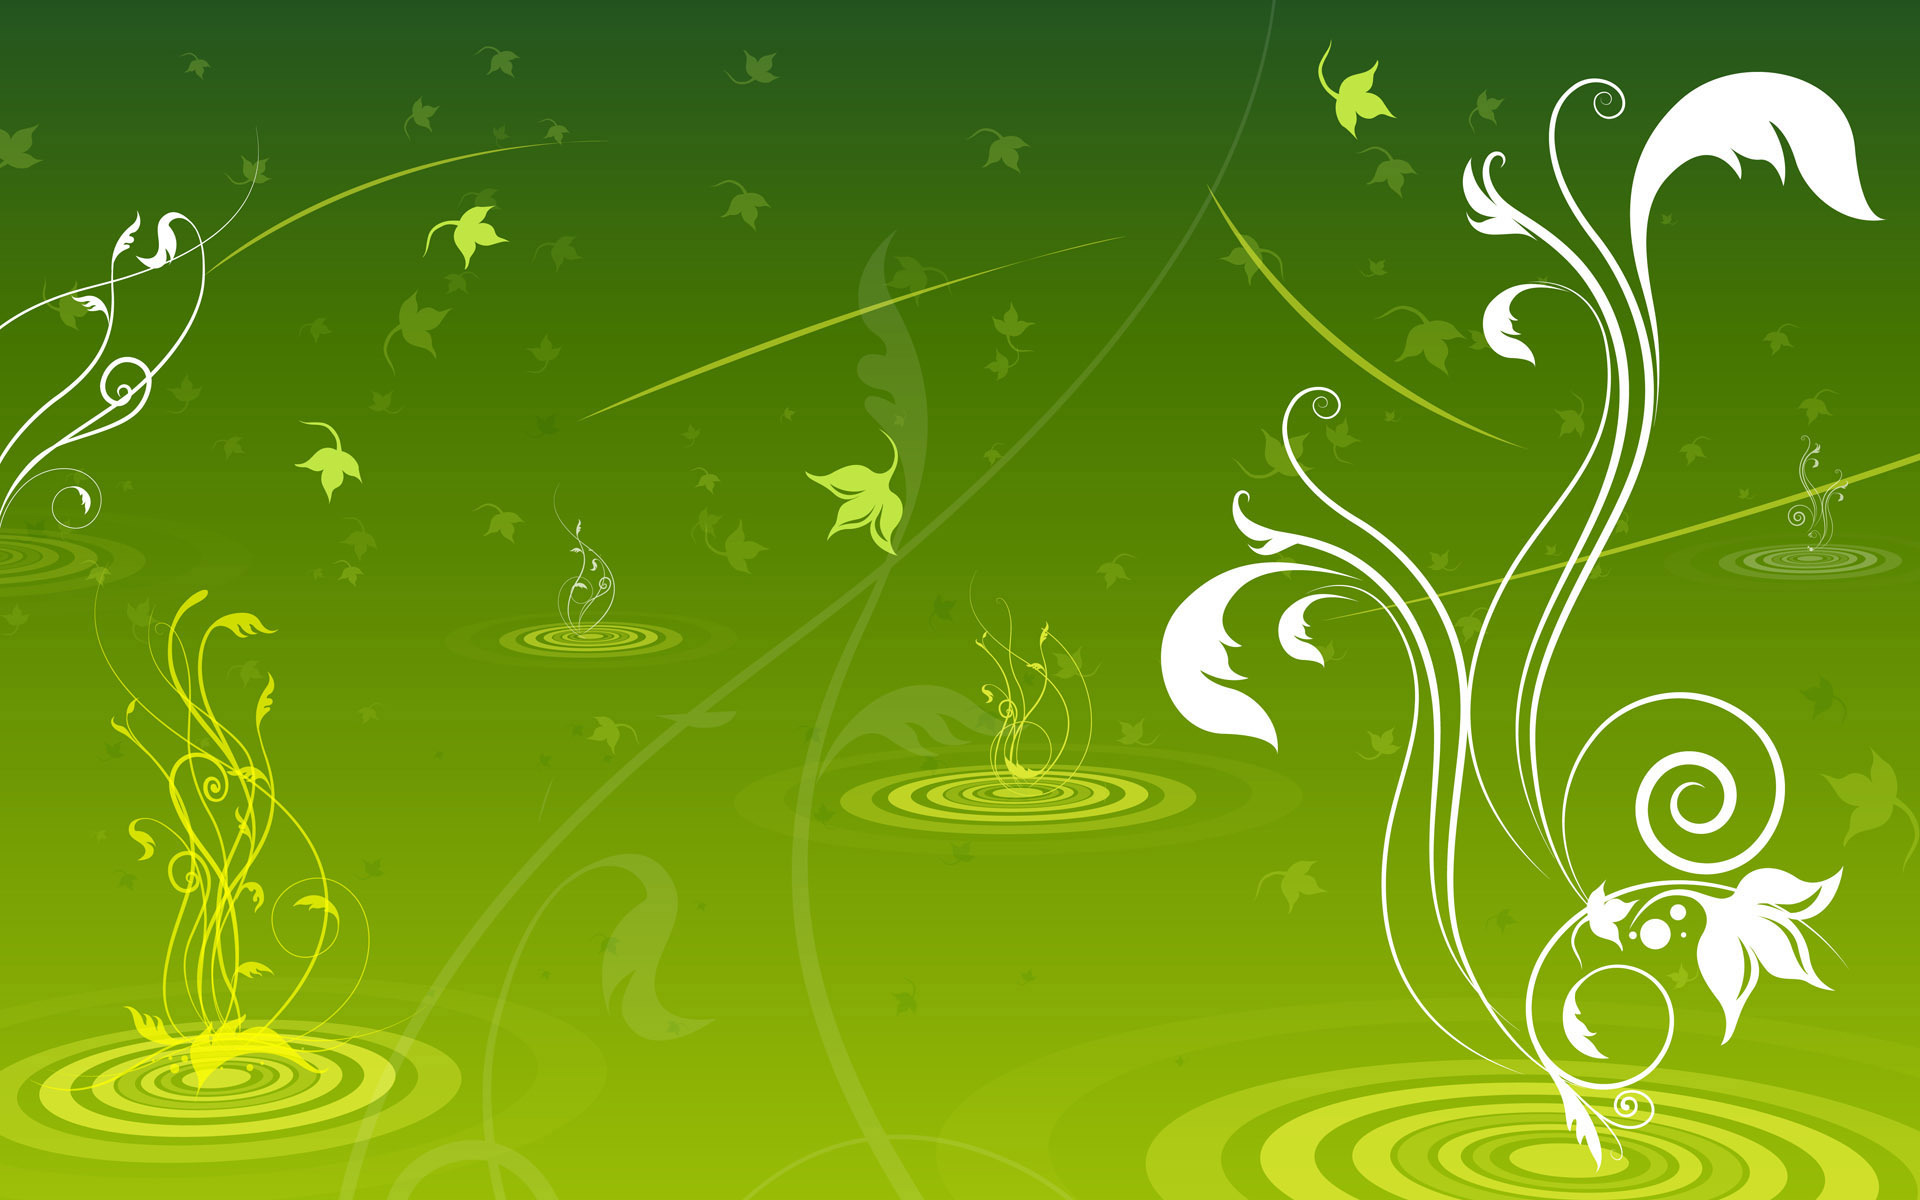 Green Swirls Wallpaper   Green Wallpaper 20988856 1920x1200